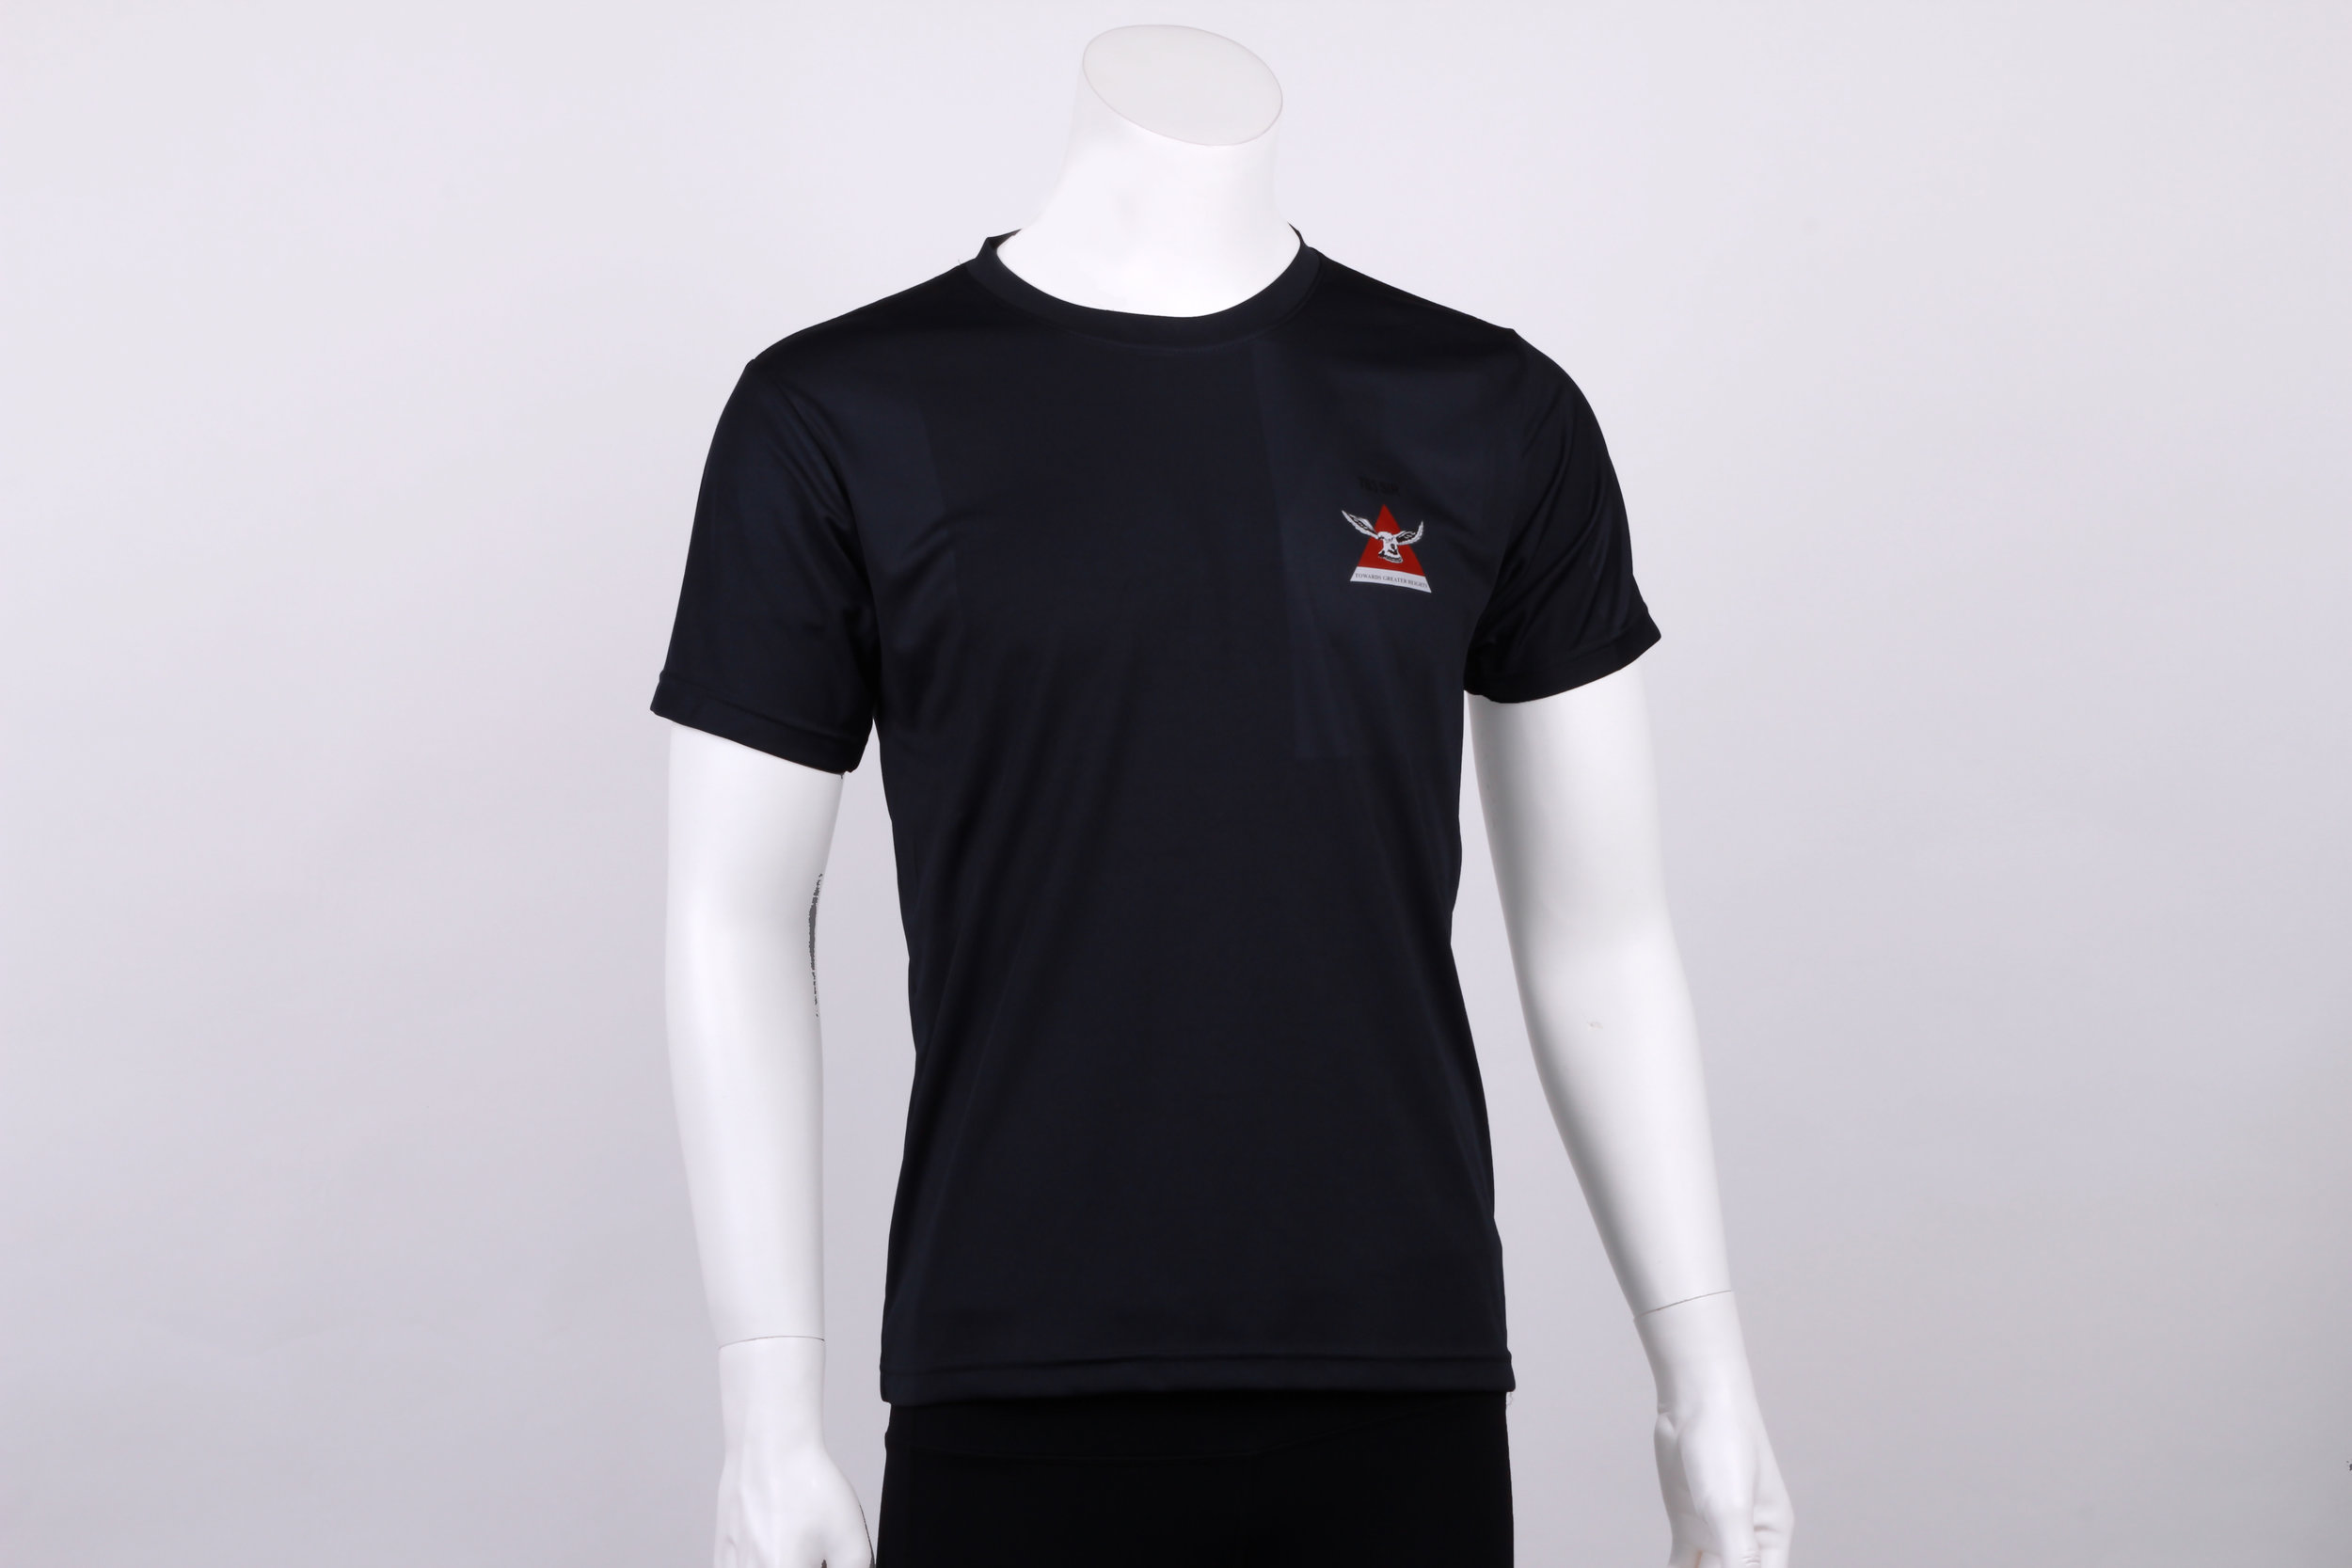 Standard Round neck with heat transfer logo